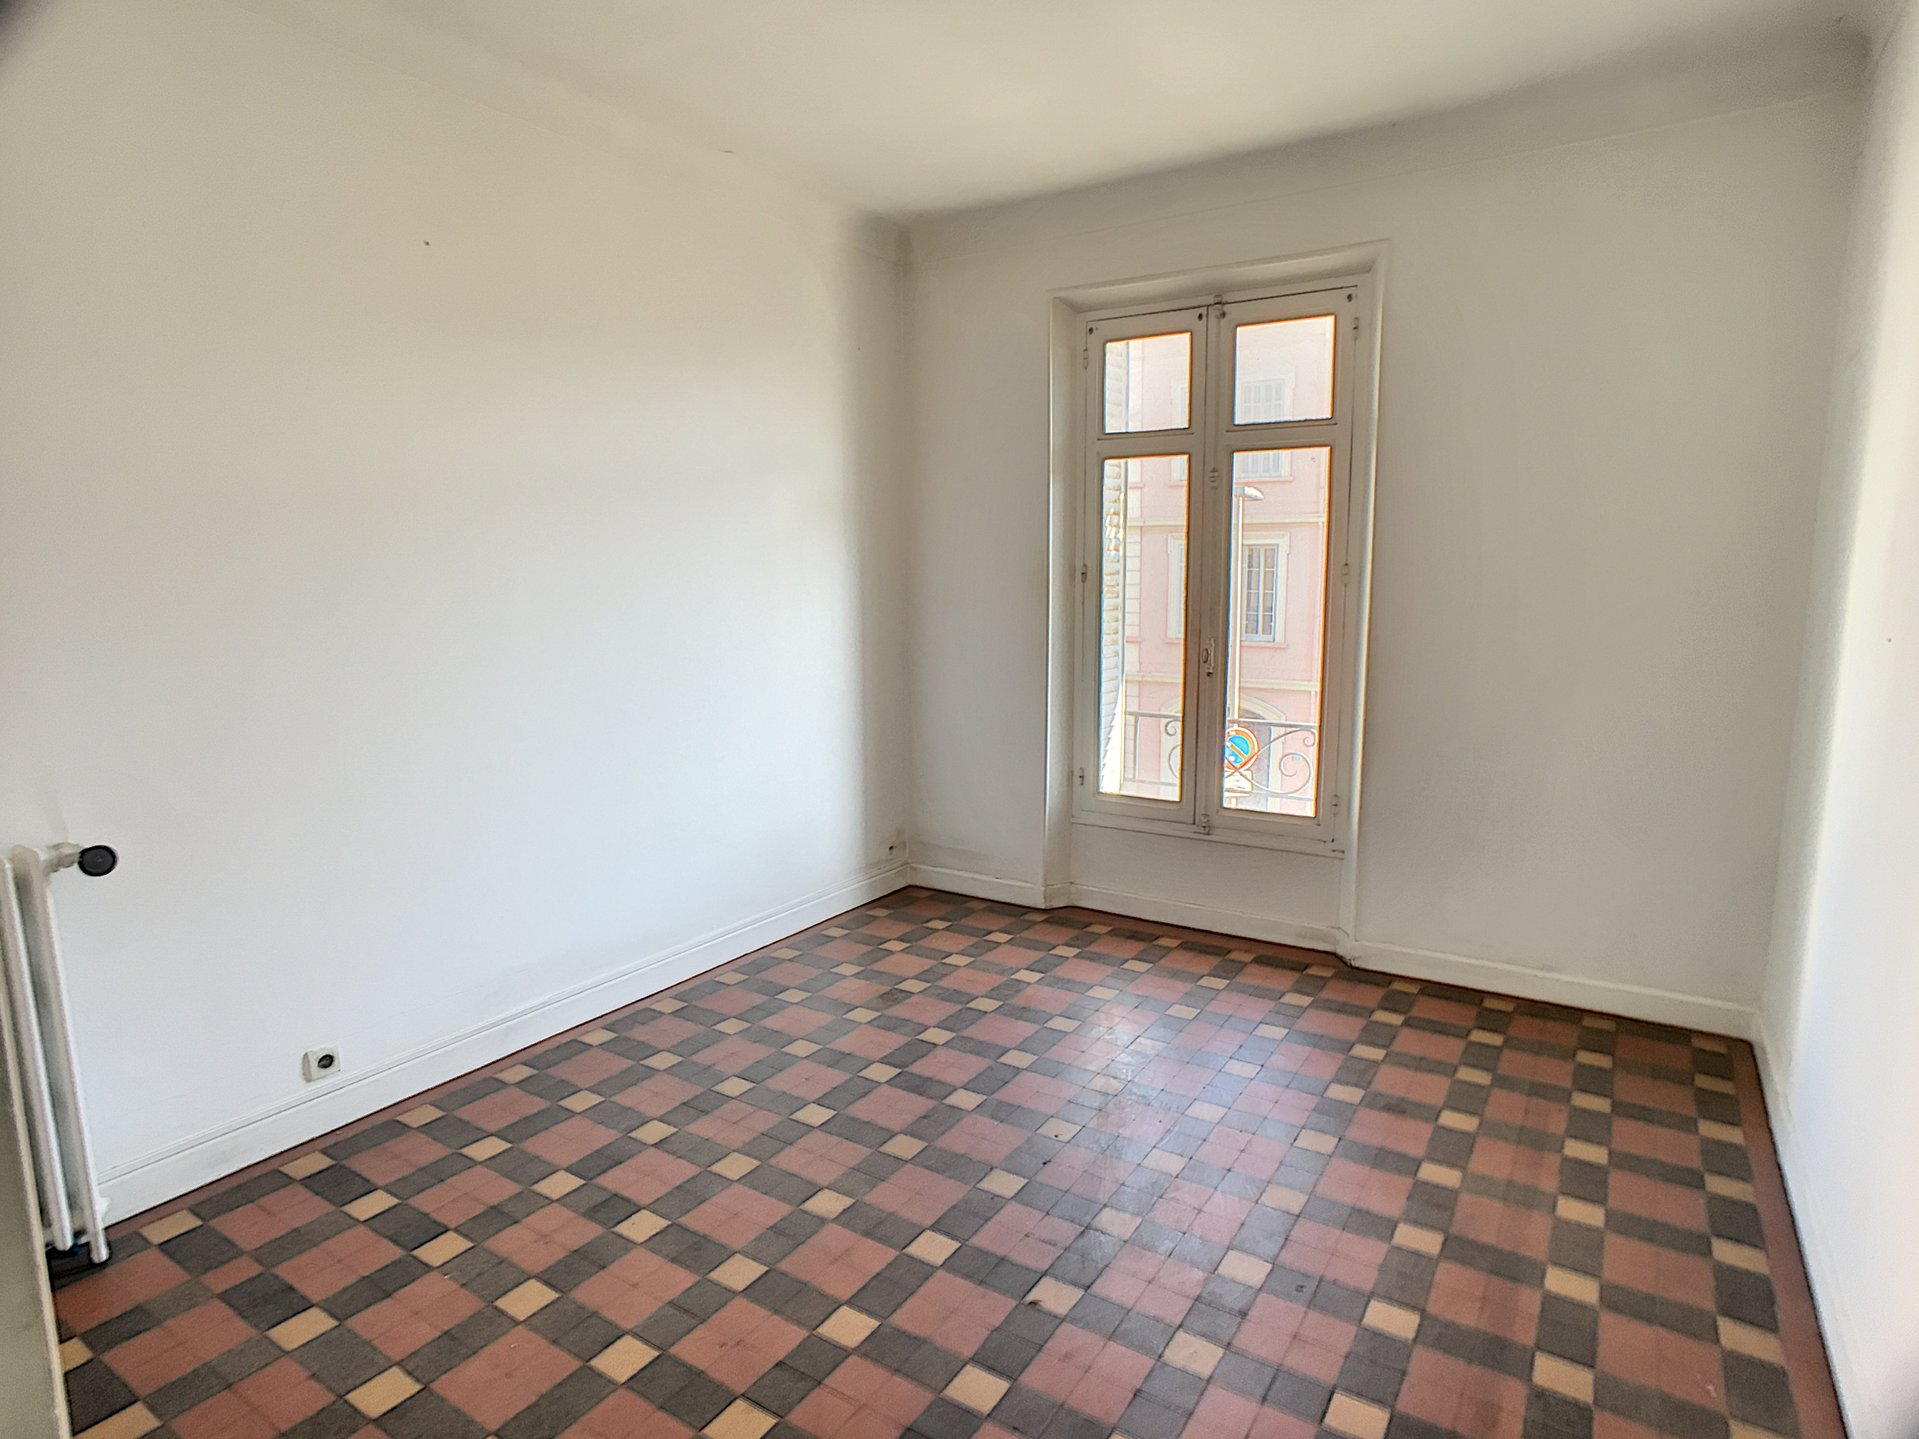 Sole agent - 2 rooms flat.